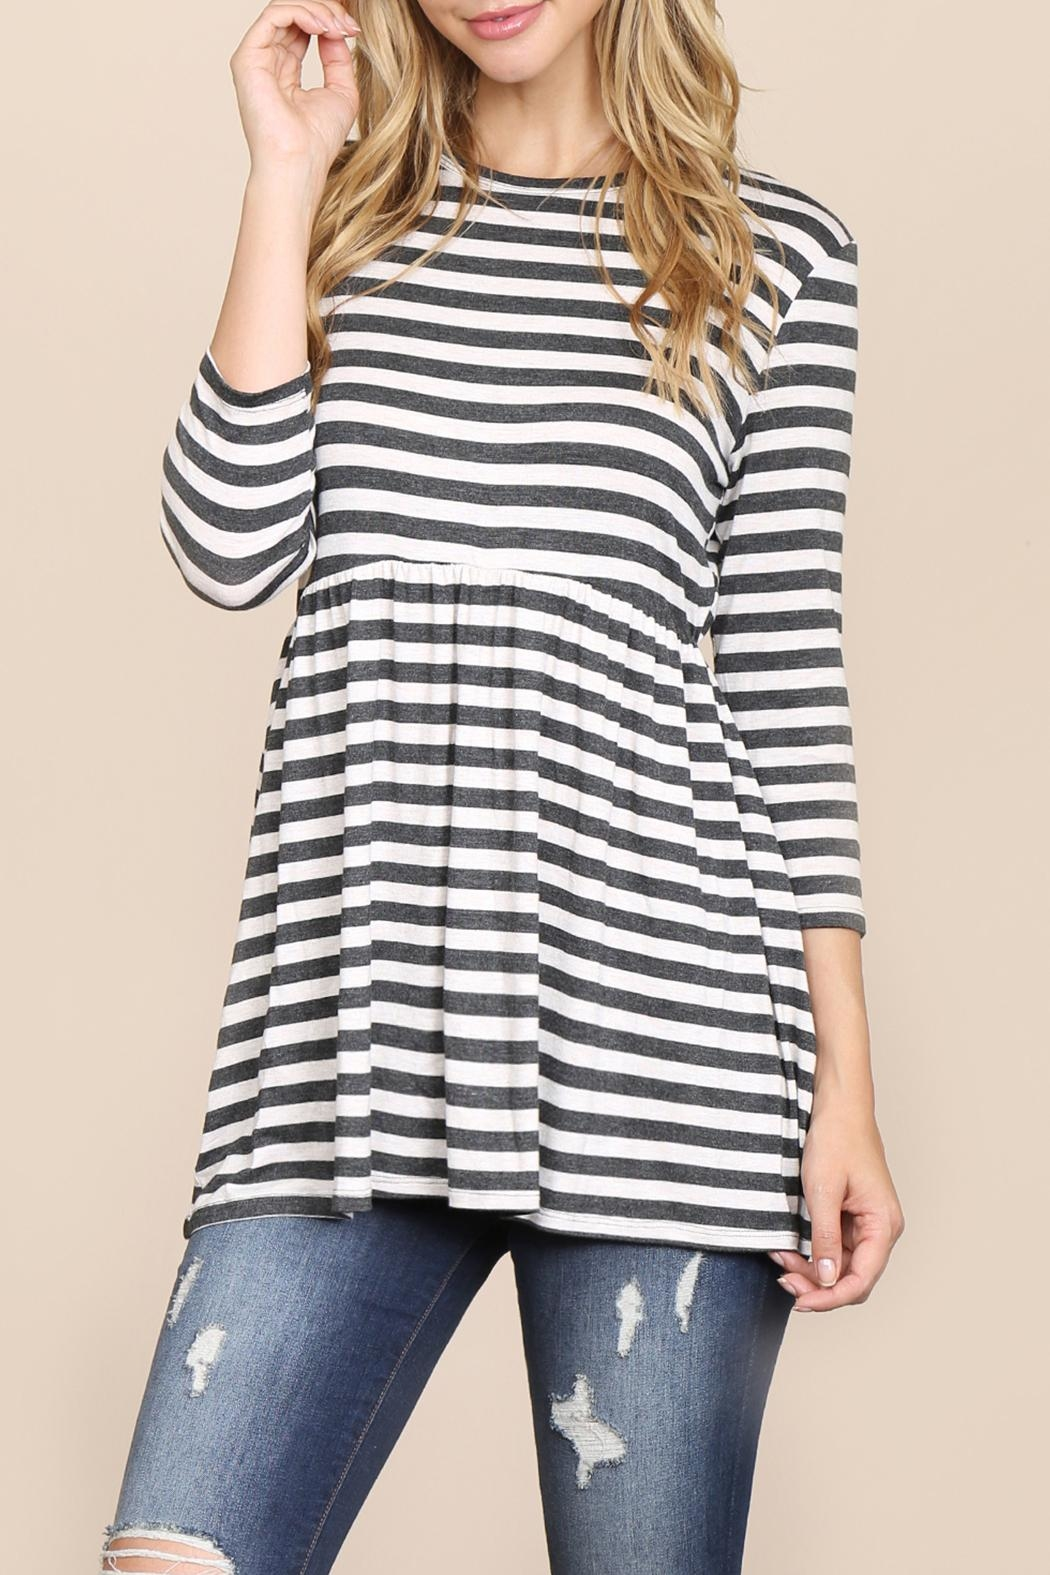 Riah Fashion Everyday-Half-Inch Striped-Tunic - Front Cropped Image